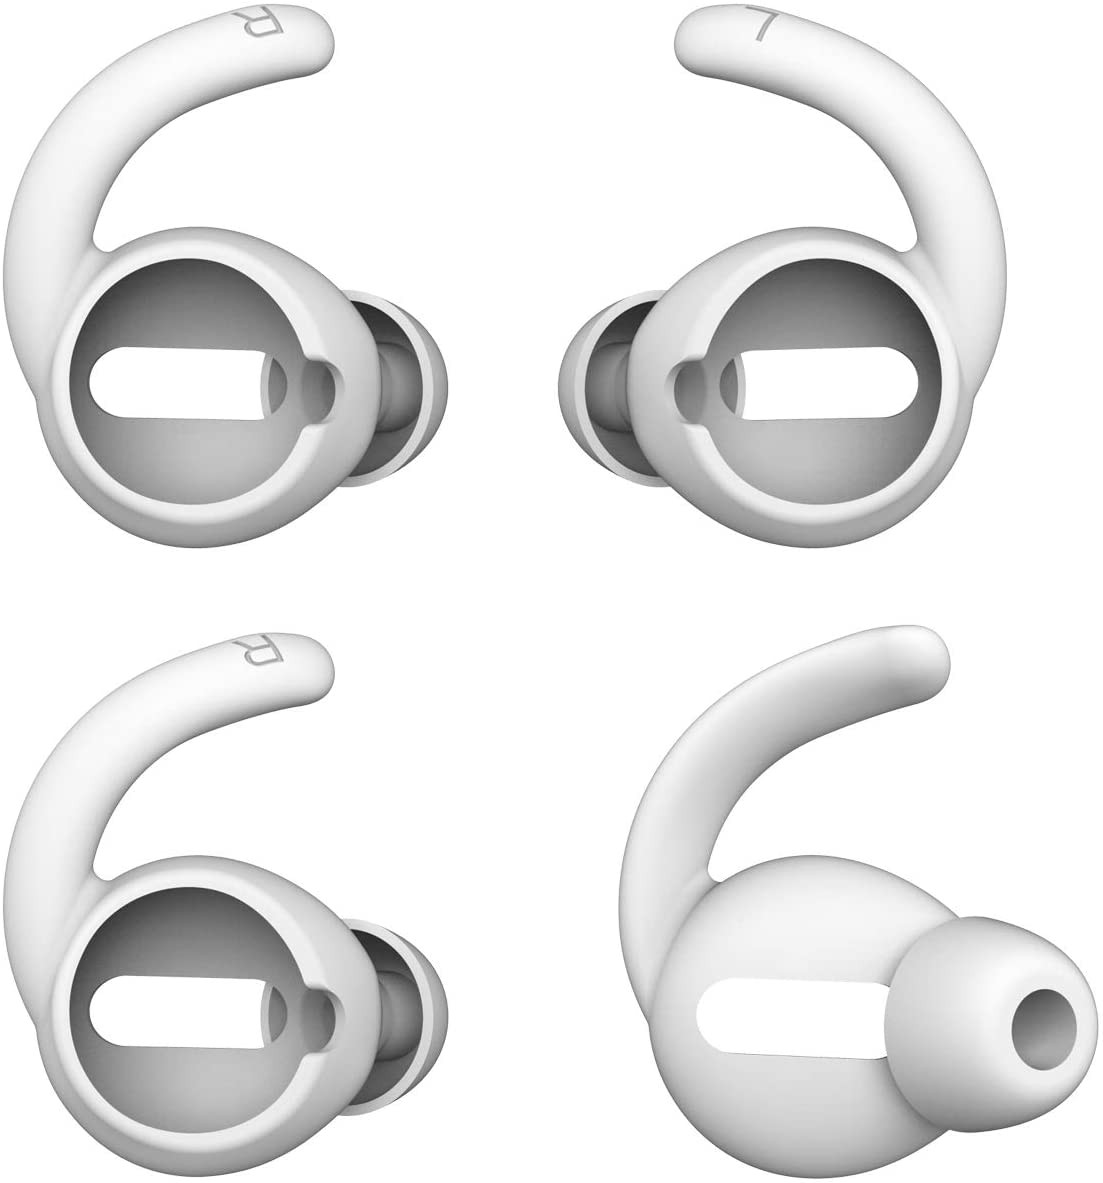 Anti-Slip Earhooks Soft Silicone Skin Compatible with Apple Airpods 2 & 1 Lightweight Sound Quality Enhancement for Headphones Outdoor Activities in-Ear EarHook 2 Pairs White & Black